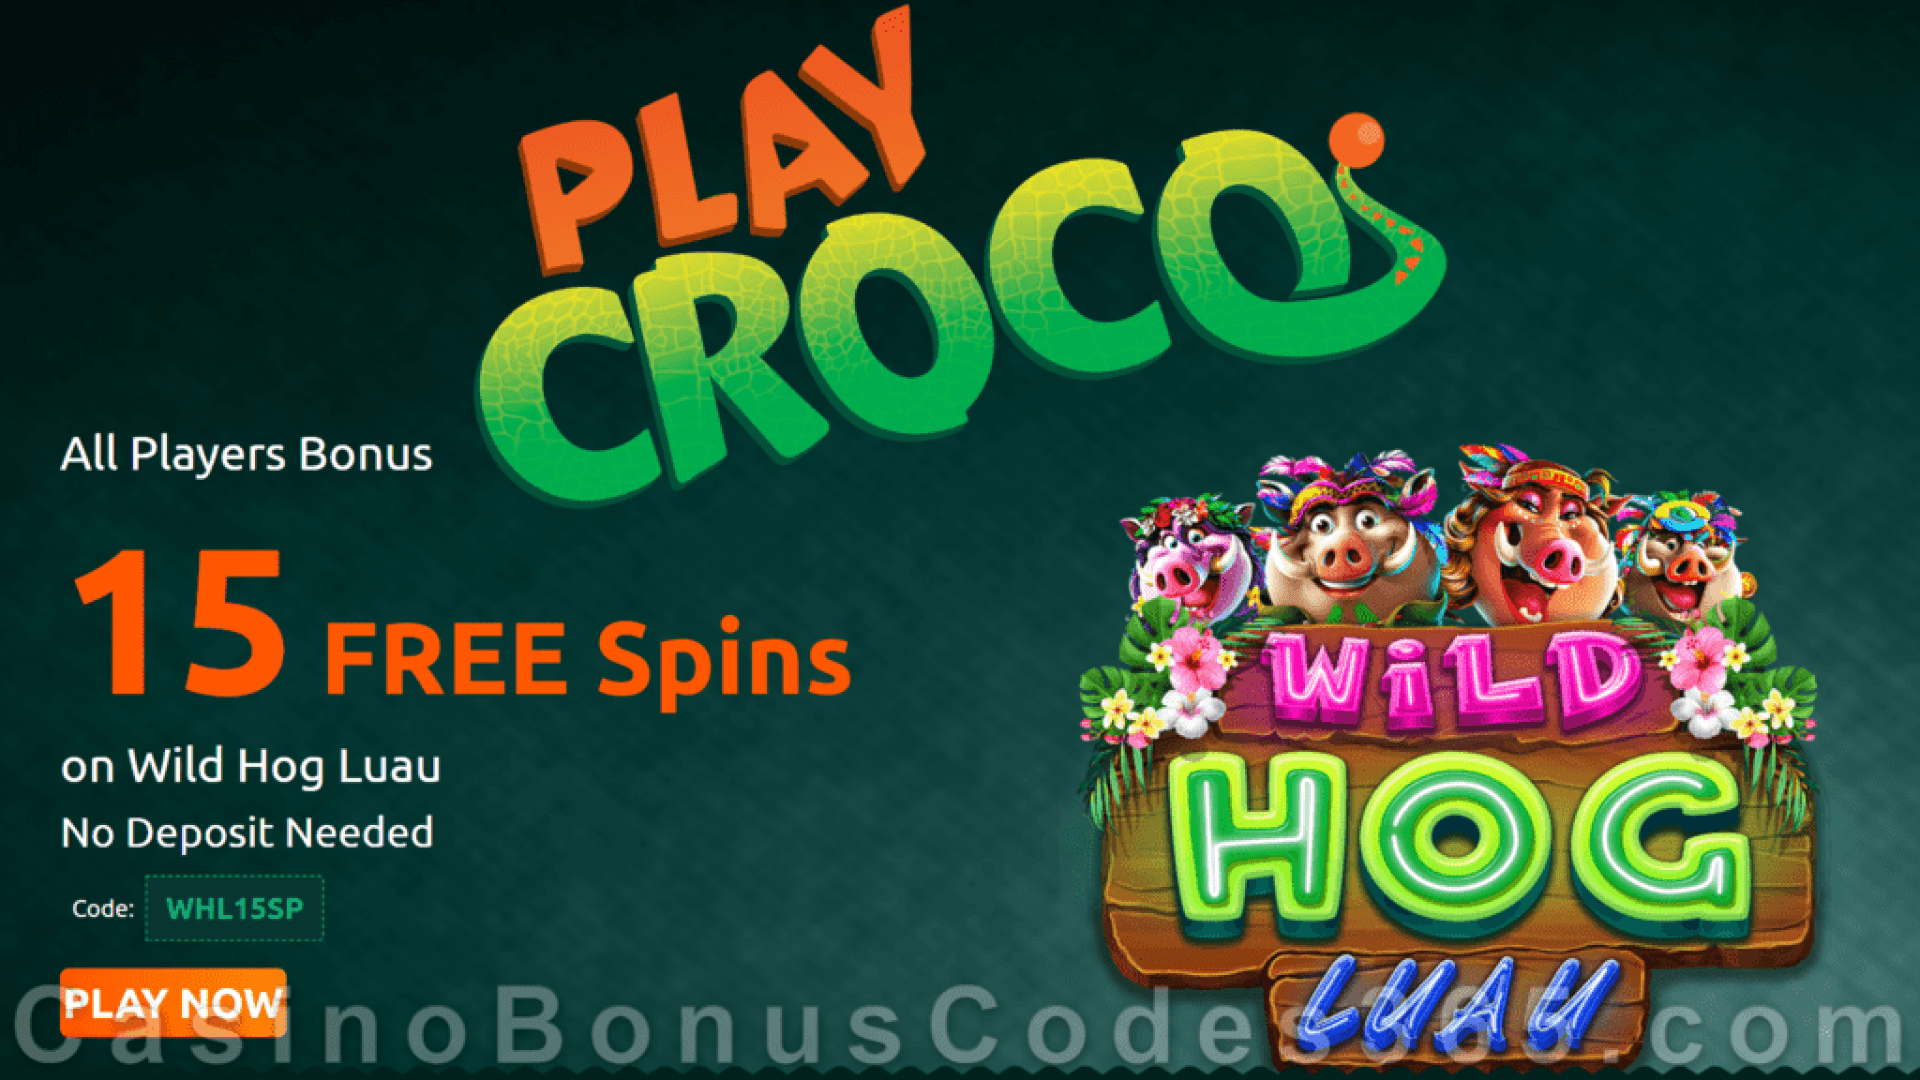 PlayCroco 15 FREE RTG Wild Hog Luau Spins All Players Special Deal